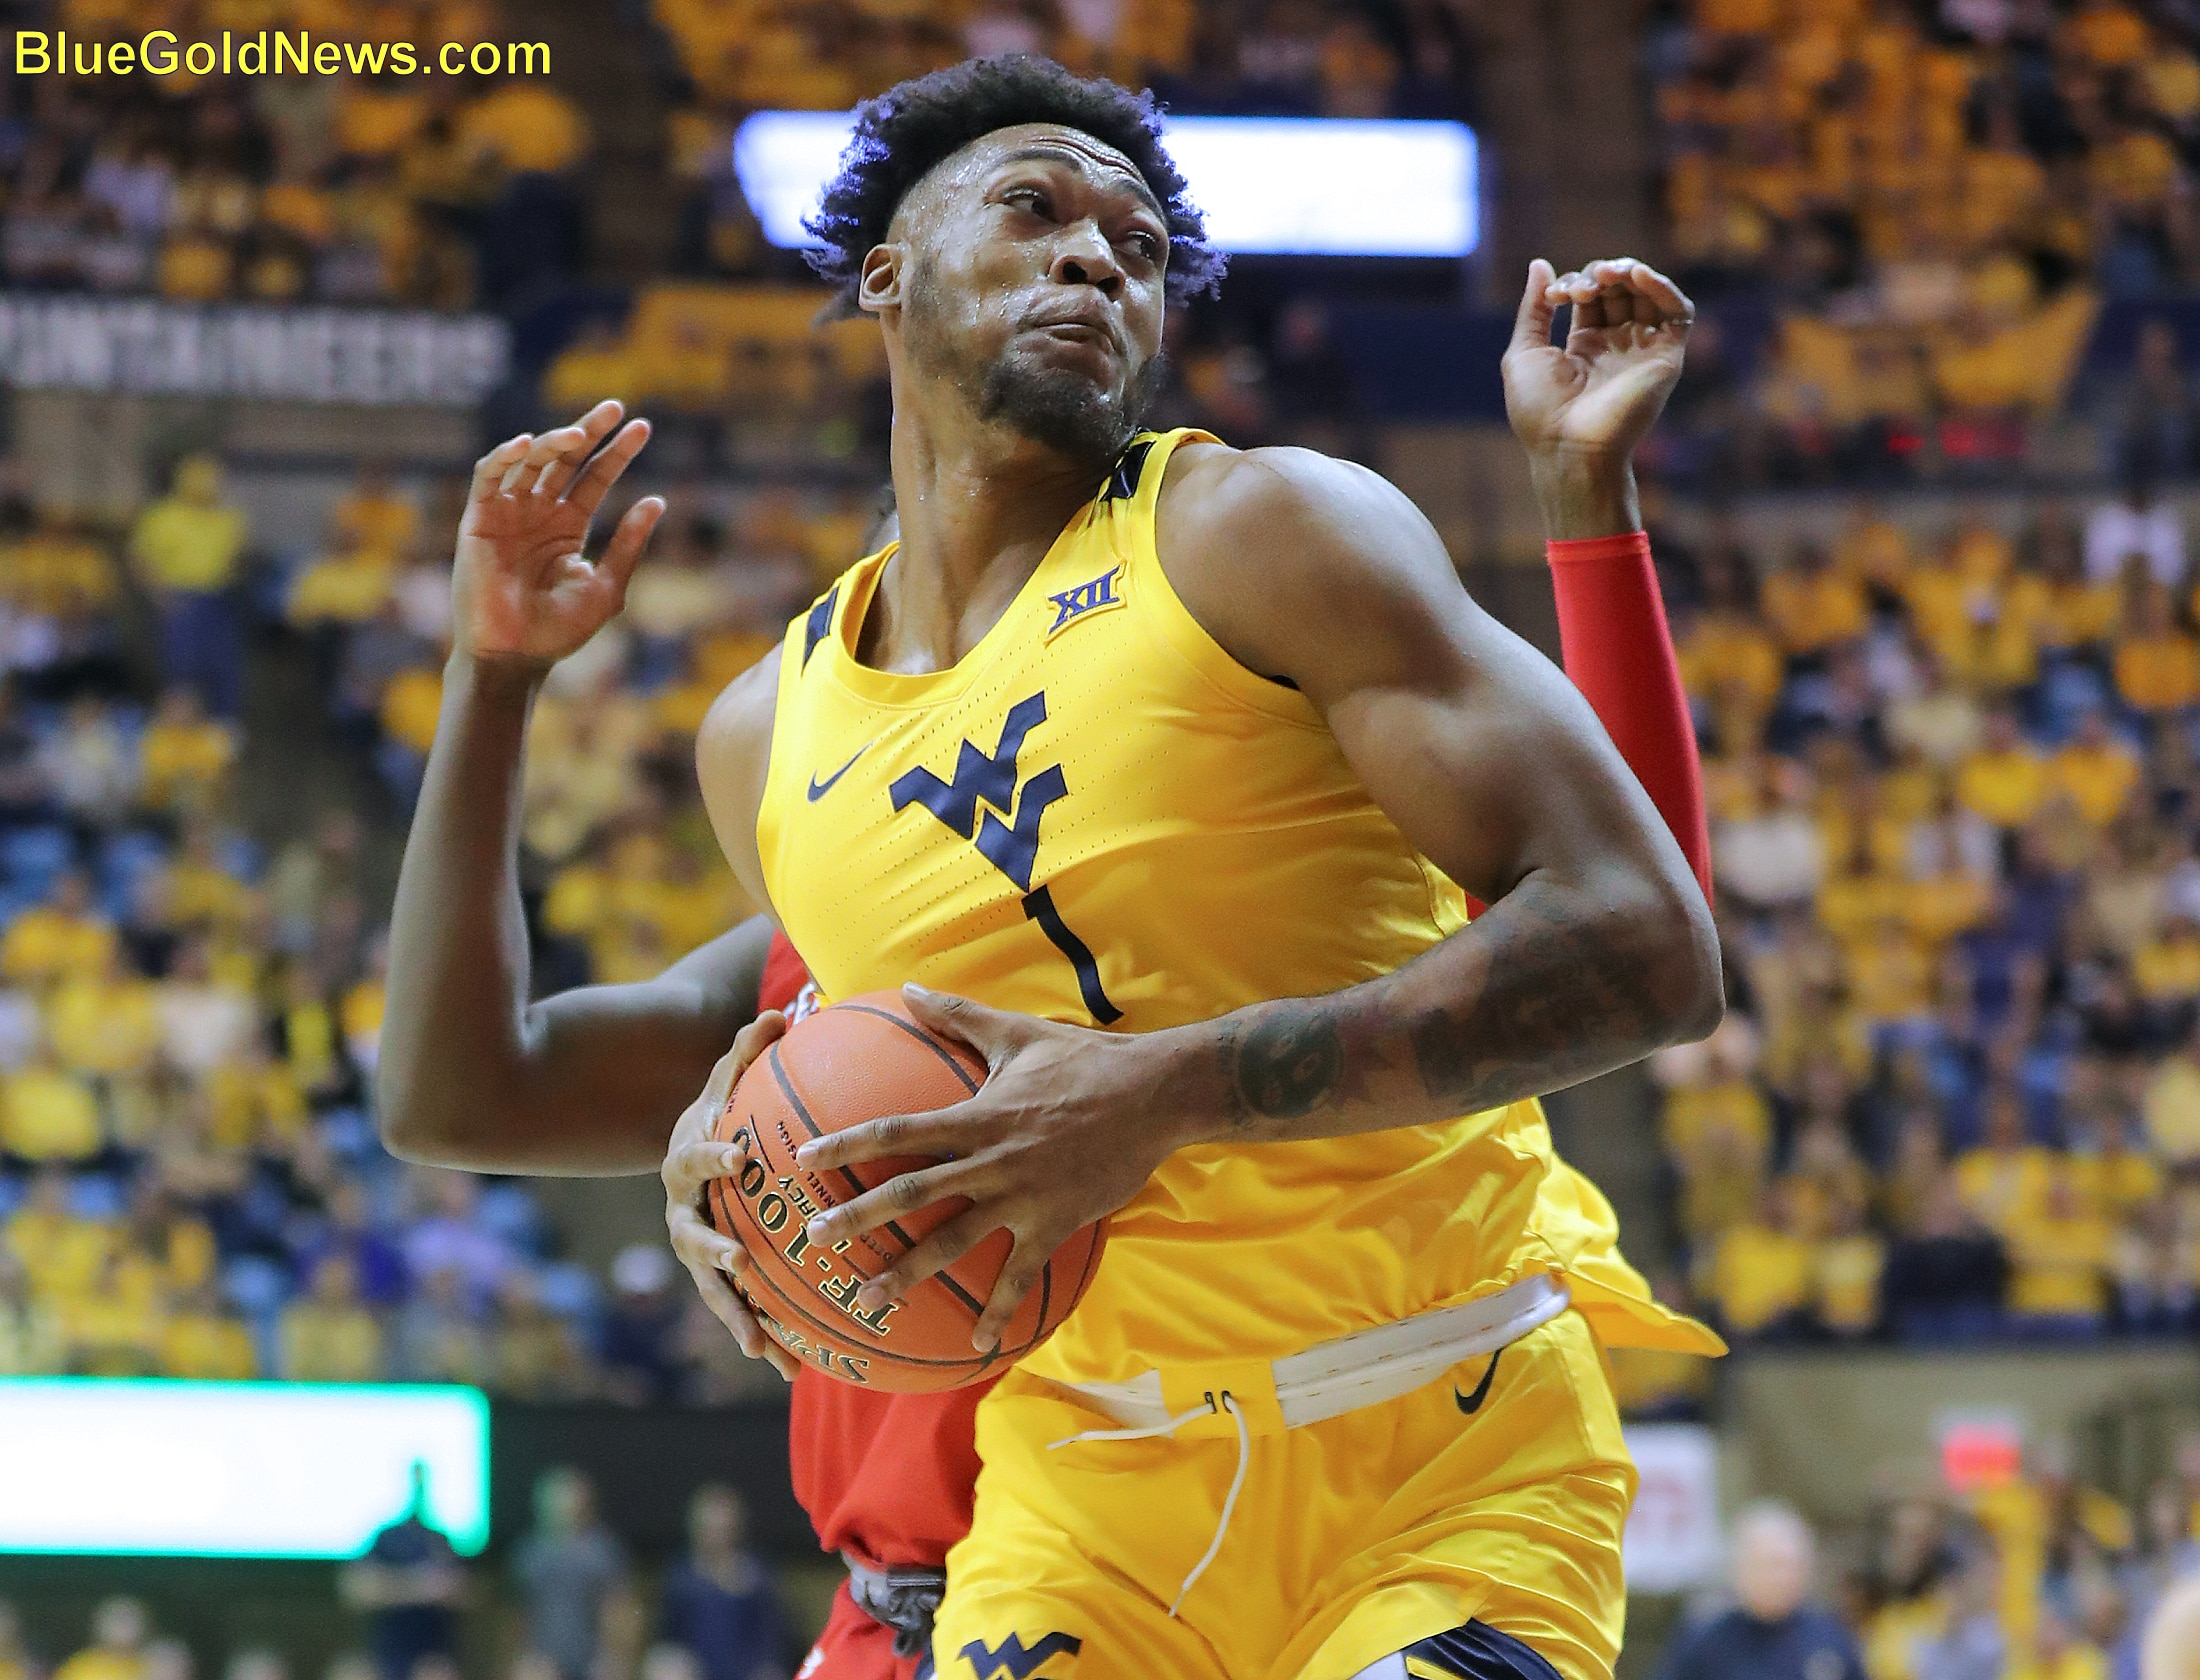 Watch West Virginia Mountaineers Texas Tech Red Raiders Highlights Interviews Wvu West Virginia Mountaineers Sports Coverage Blue Gold News